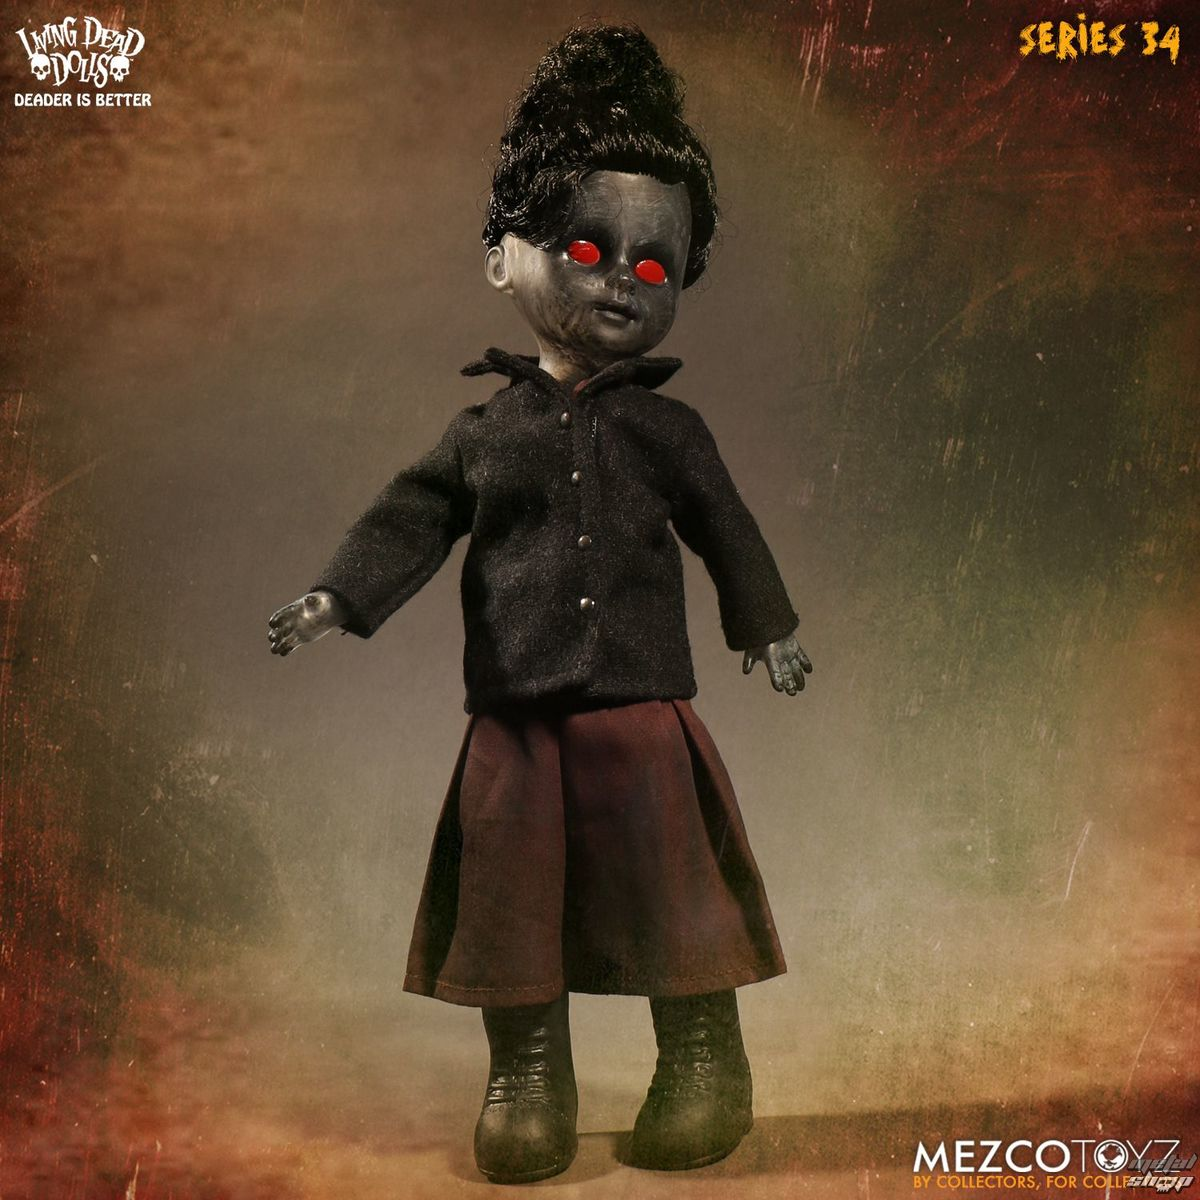 panenka Living Dead Dolls - The Time Has Come To Tell The Tale - Soot - MEZ93415-3